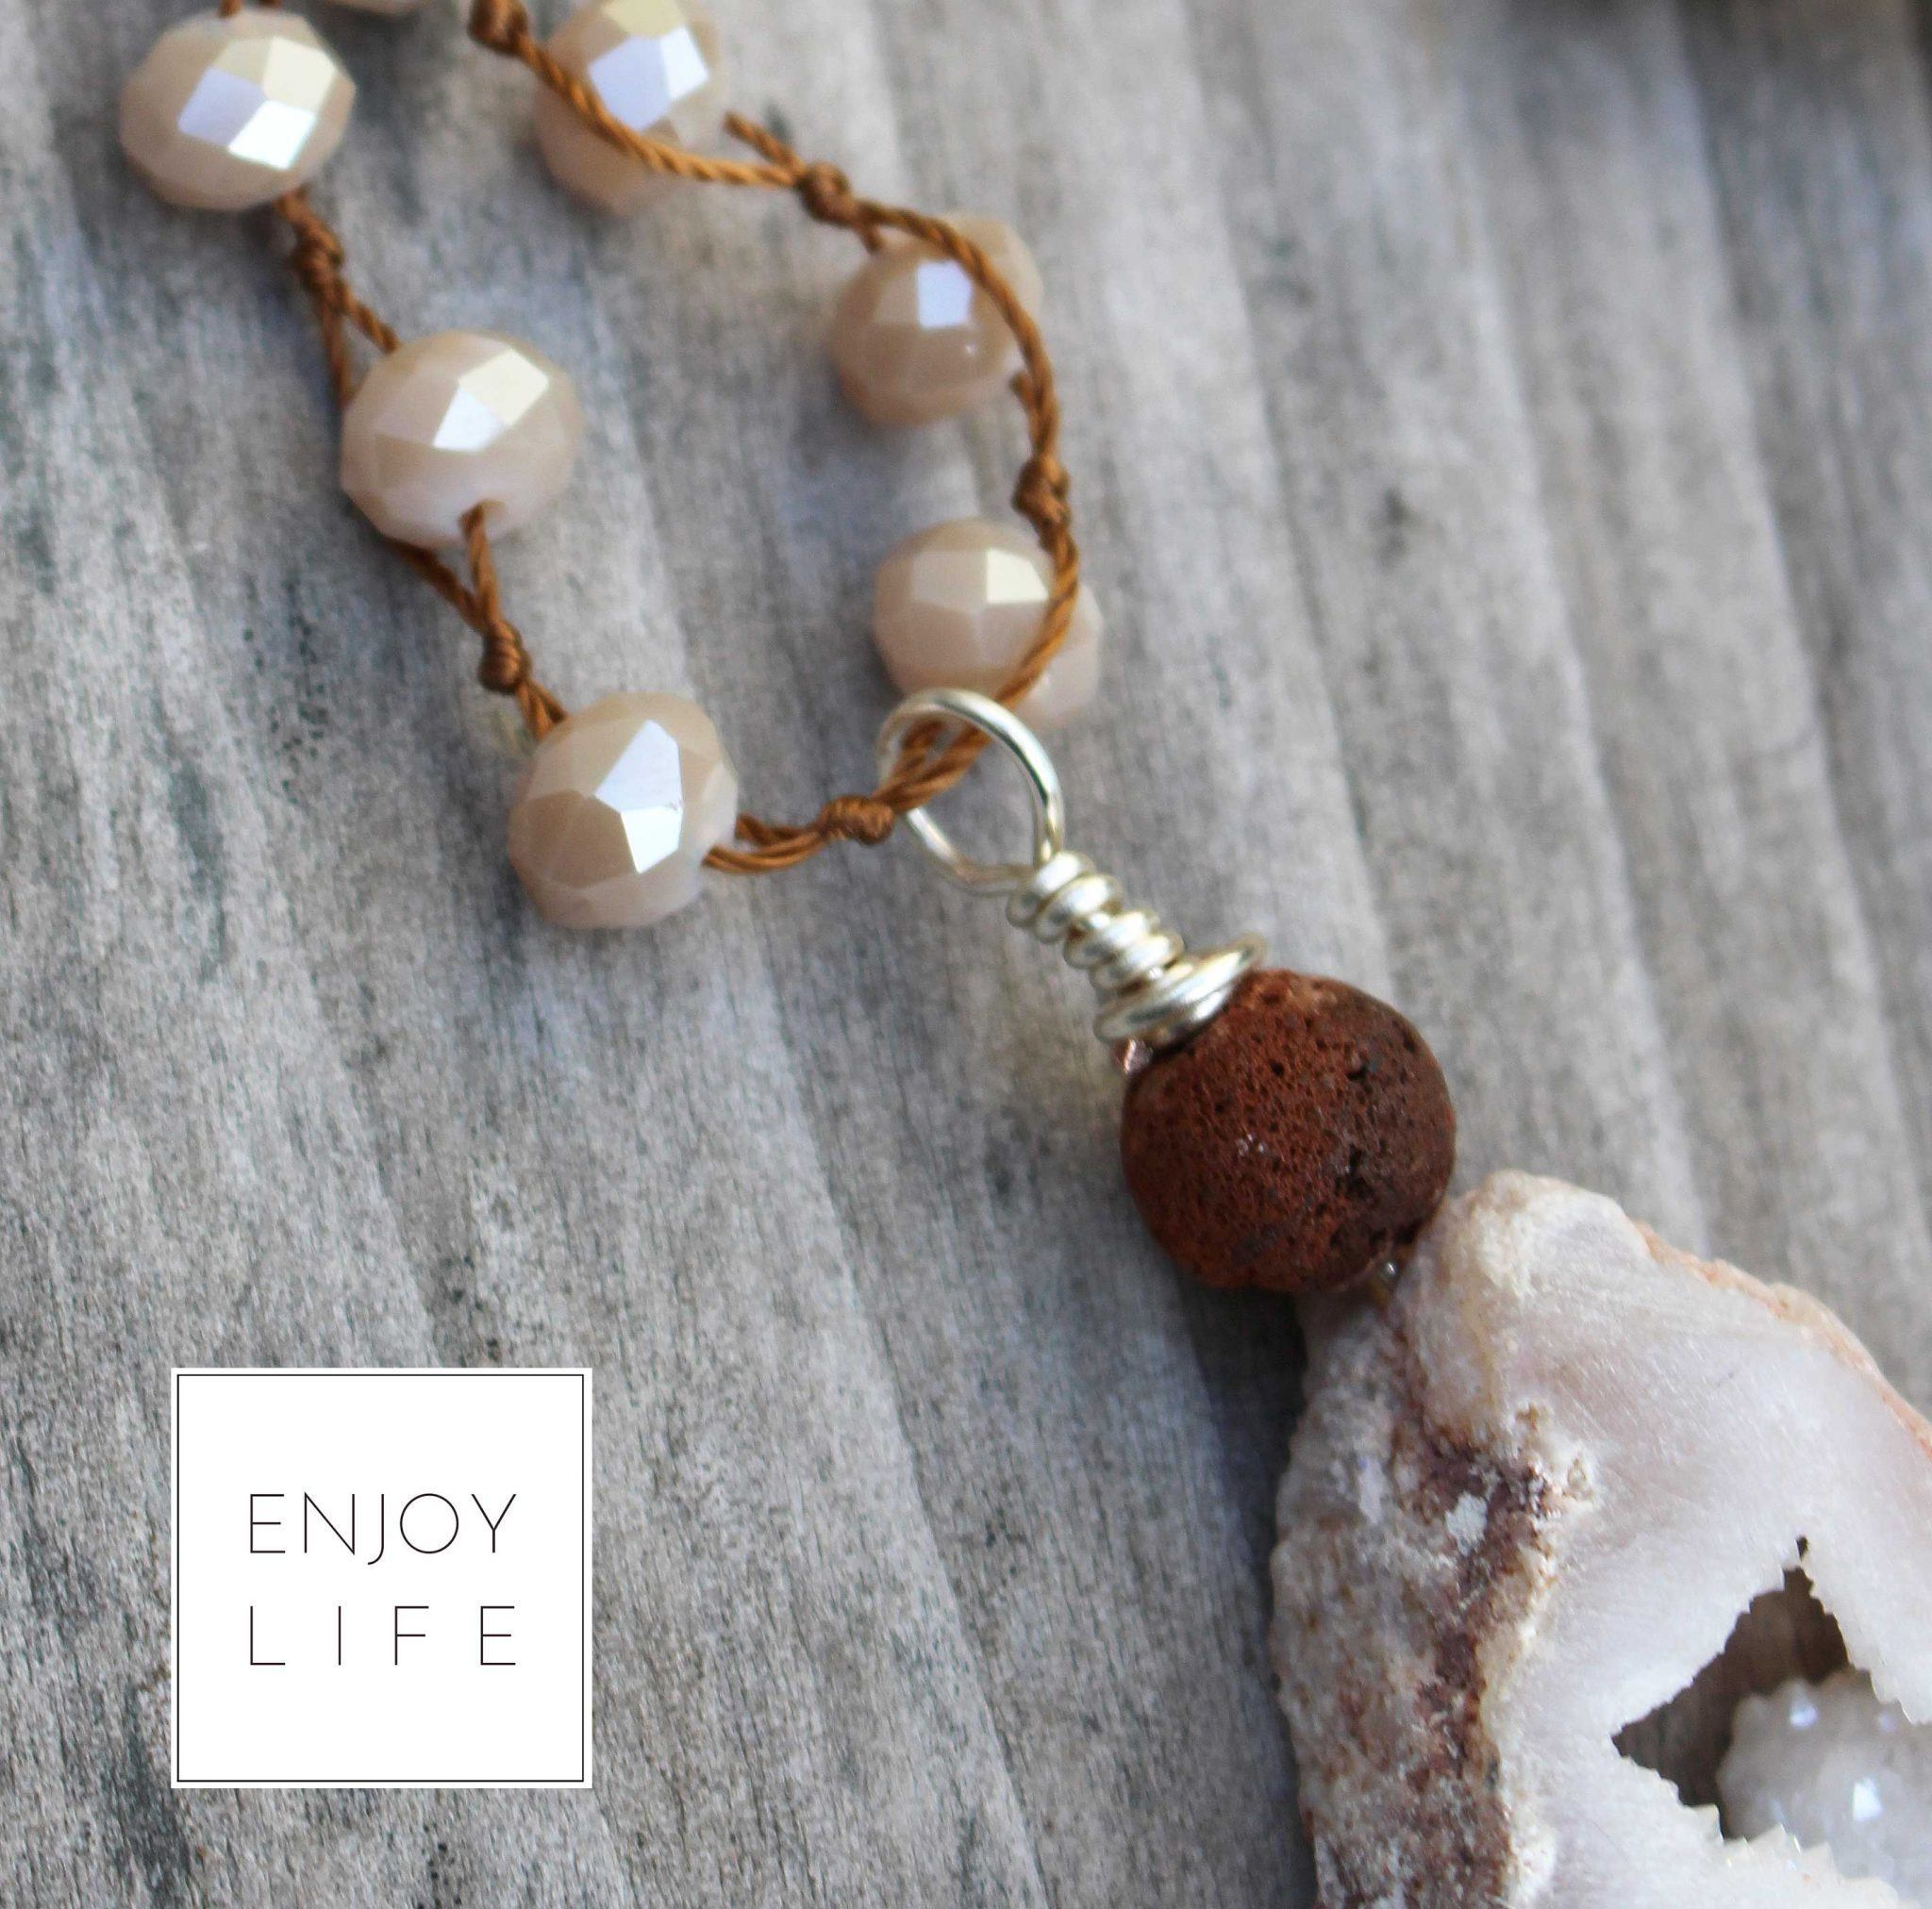 New diffuser jewelry collection coming soon. Pre-sale at https://www.facebook.com/groups/enjoylifeoilsshop/